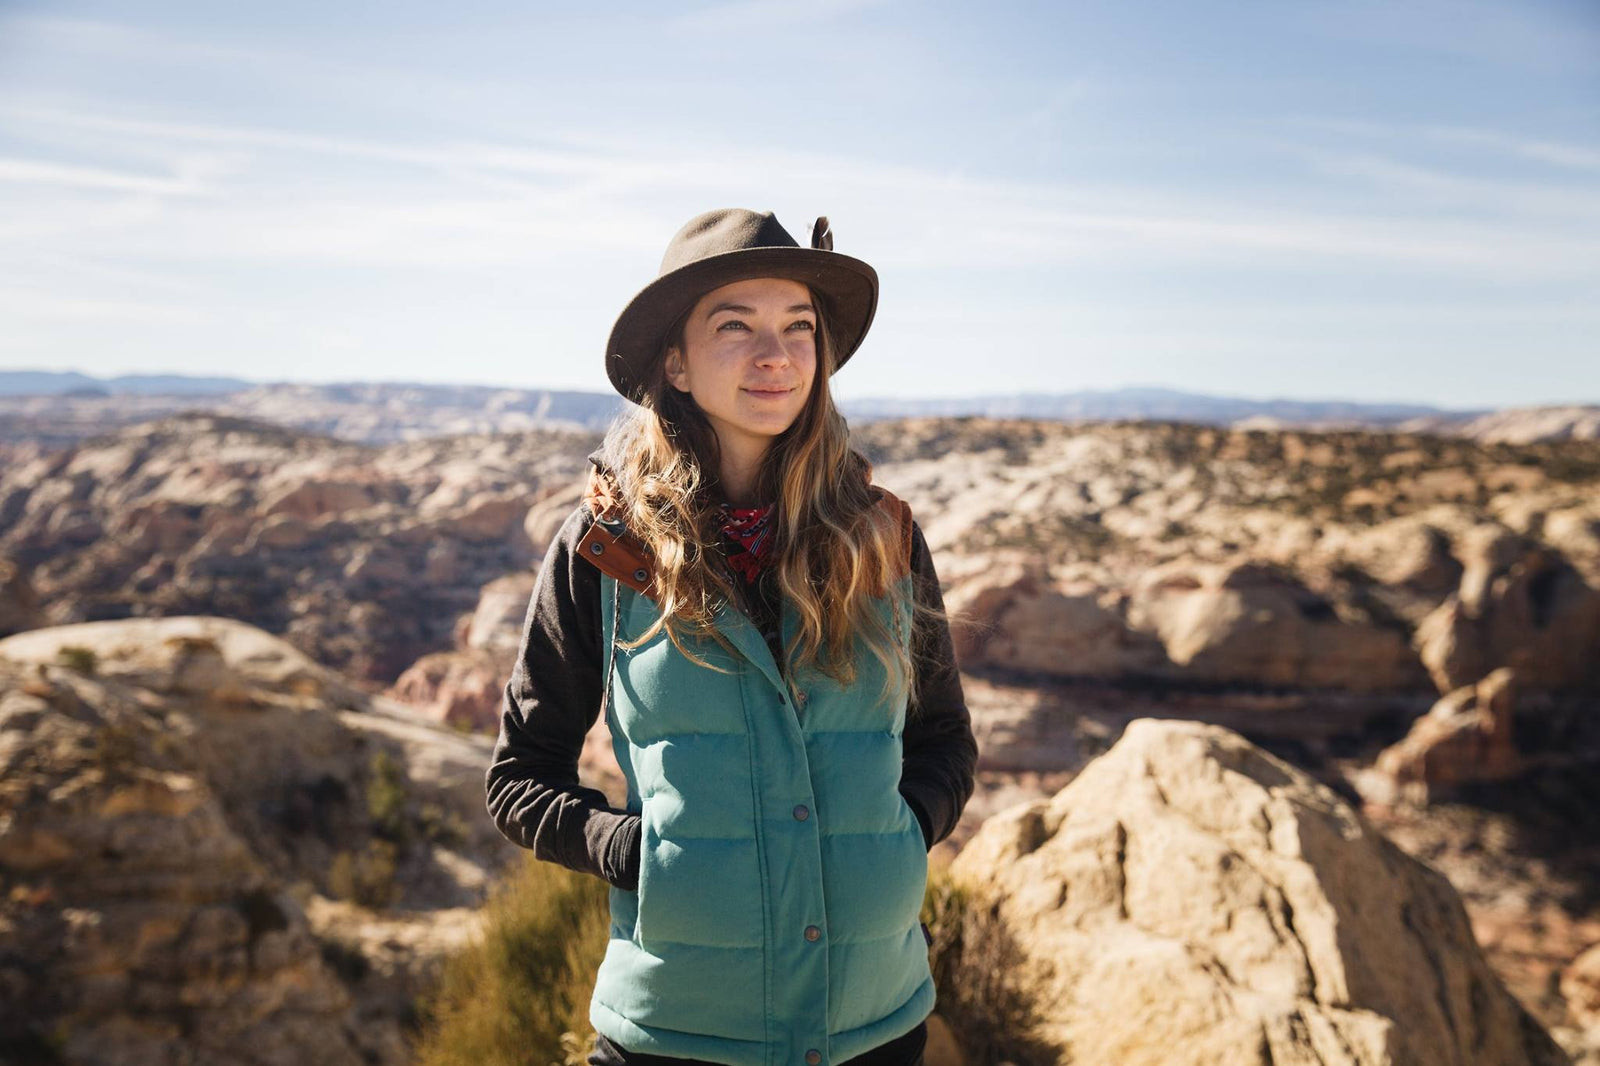 """Adventure Often, Take Care, and Do Good.""  — Katie Boué, Life Elements Ambassador"